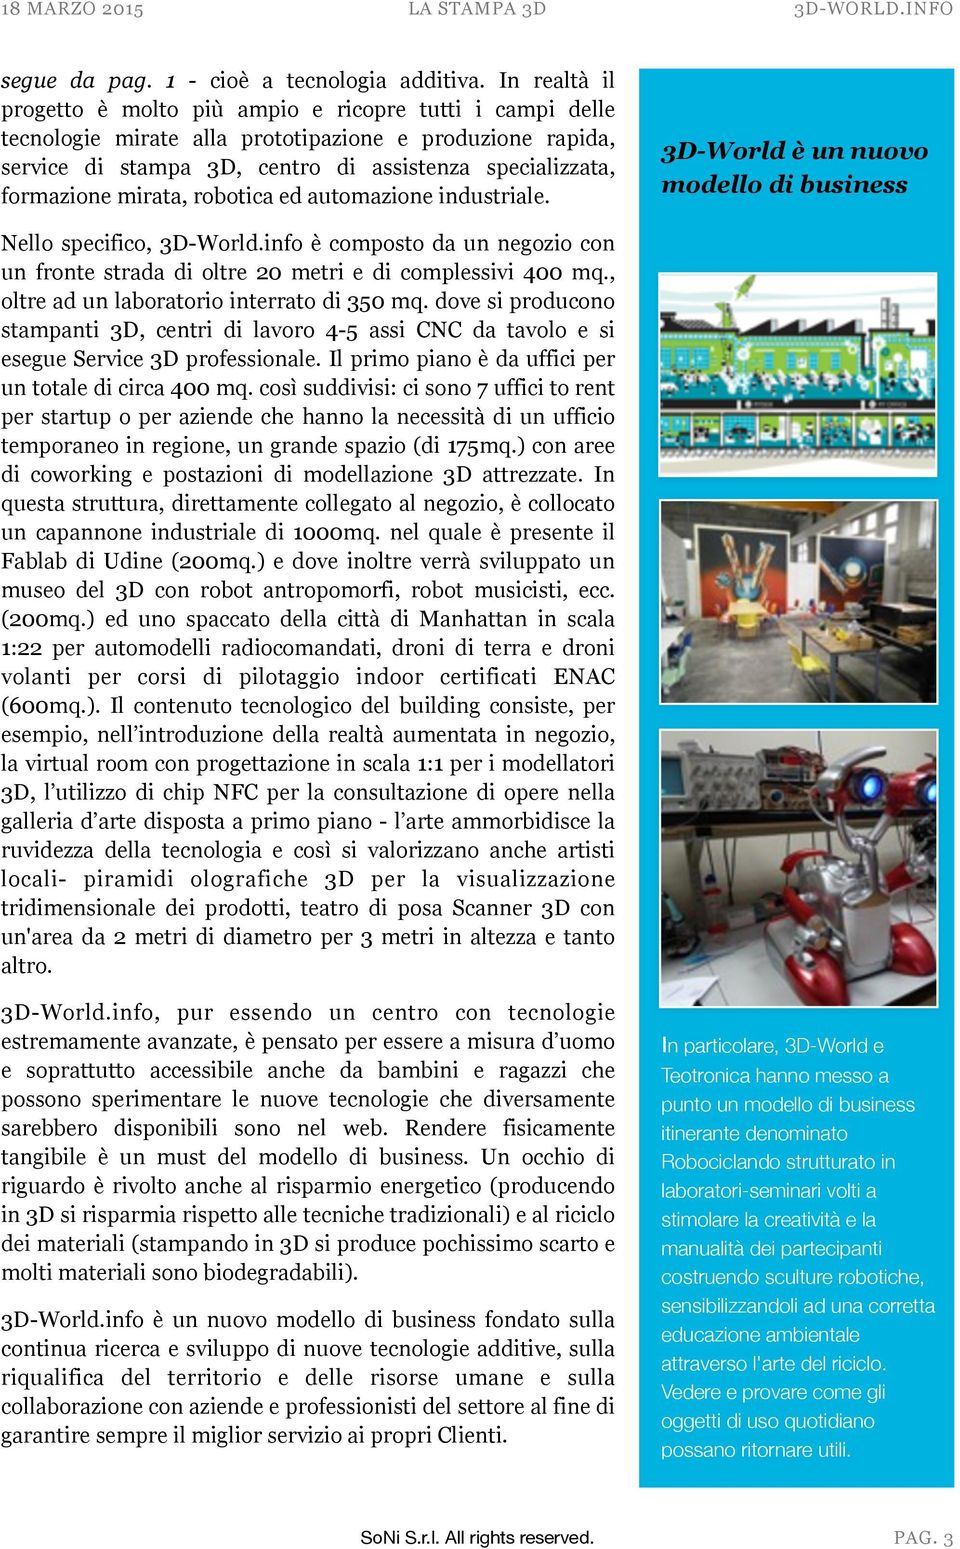 mirata, robotica ed automazione industriale. 3D-World è un nuovo modello di business Nello specifico, 3D-World.